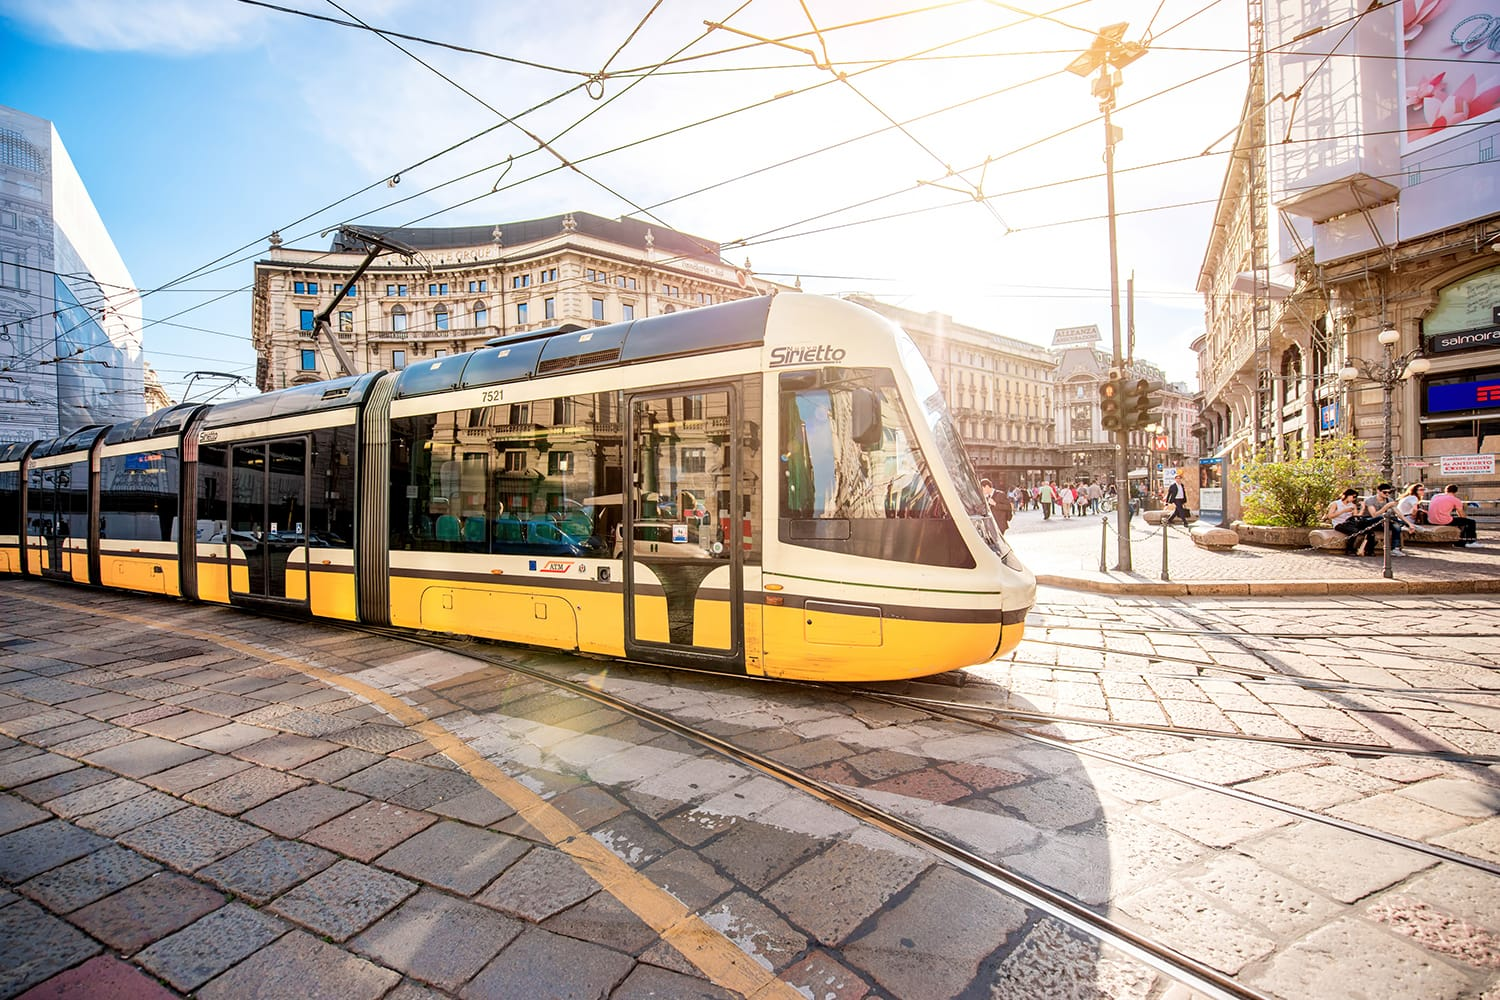 Yellow tram on Cordusio square in Milan, Italy